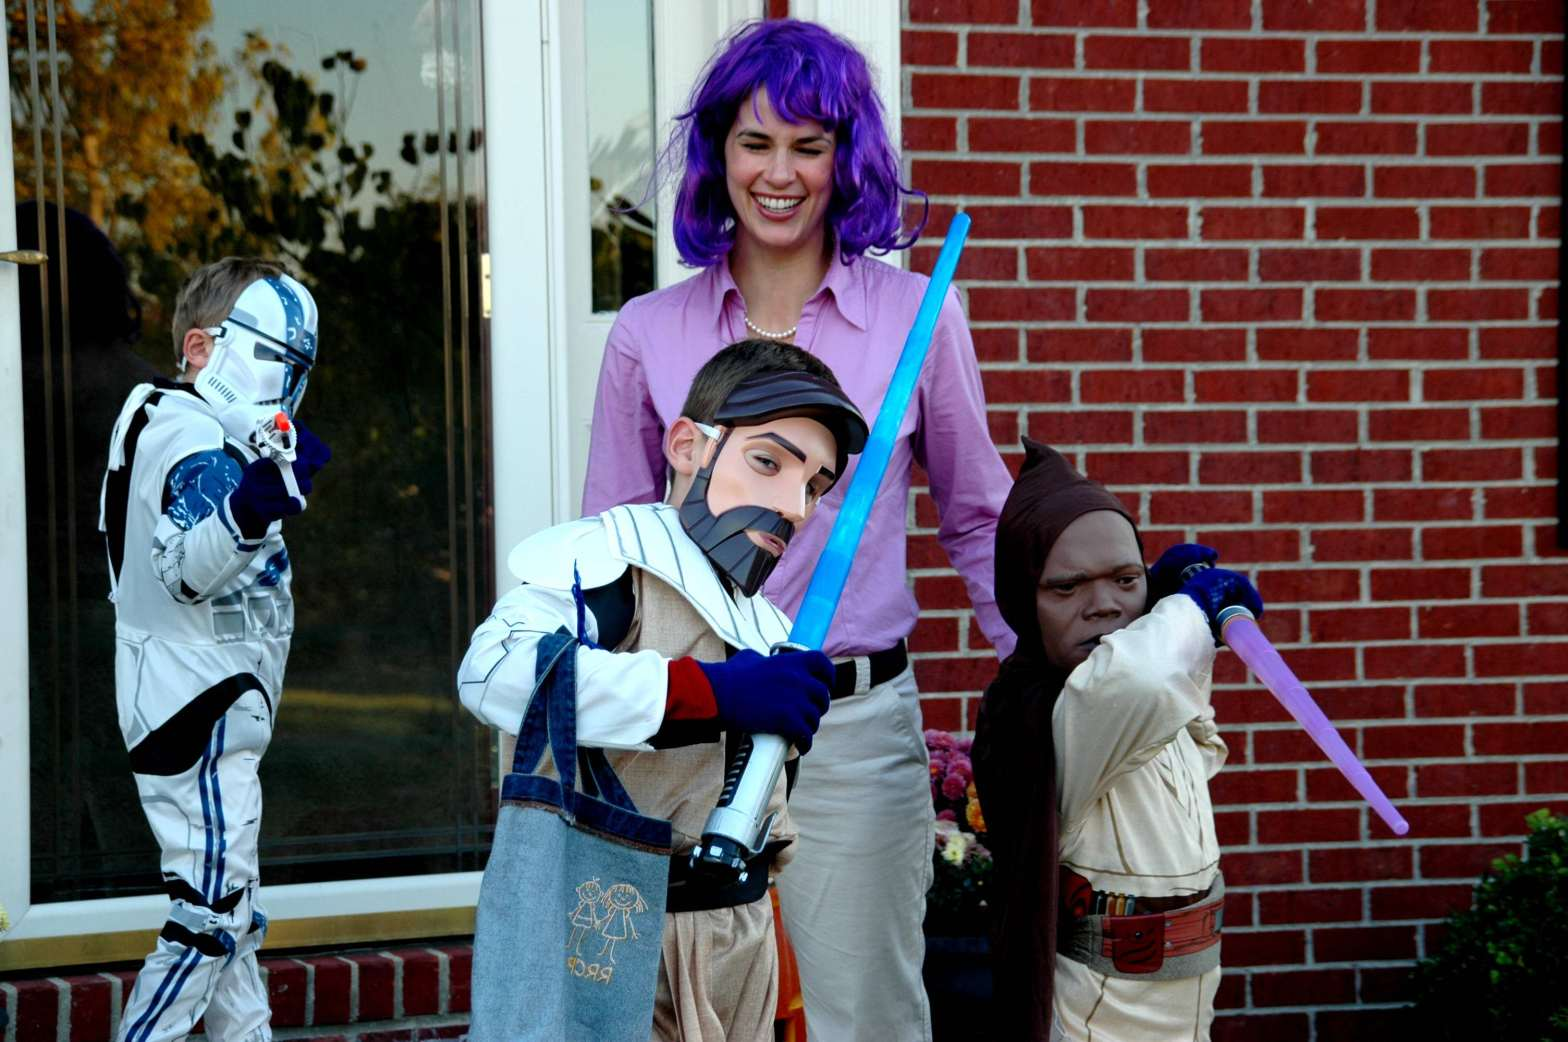 Me, the Mom in a purple wig! with my three little Jedis